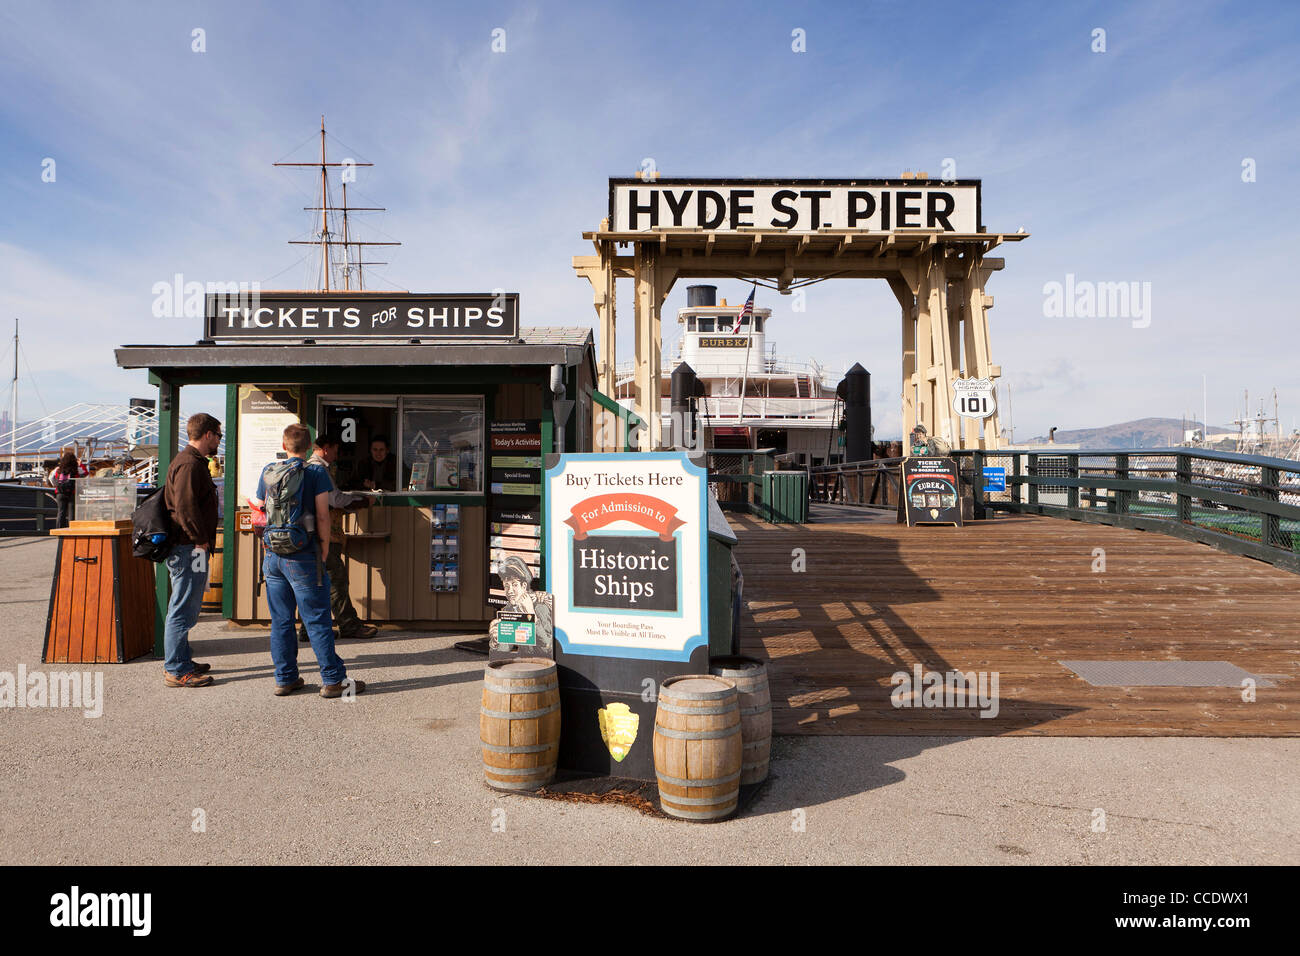 Hyde street Pier - San Francisco, California - Stock Image